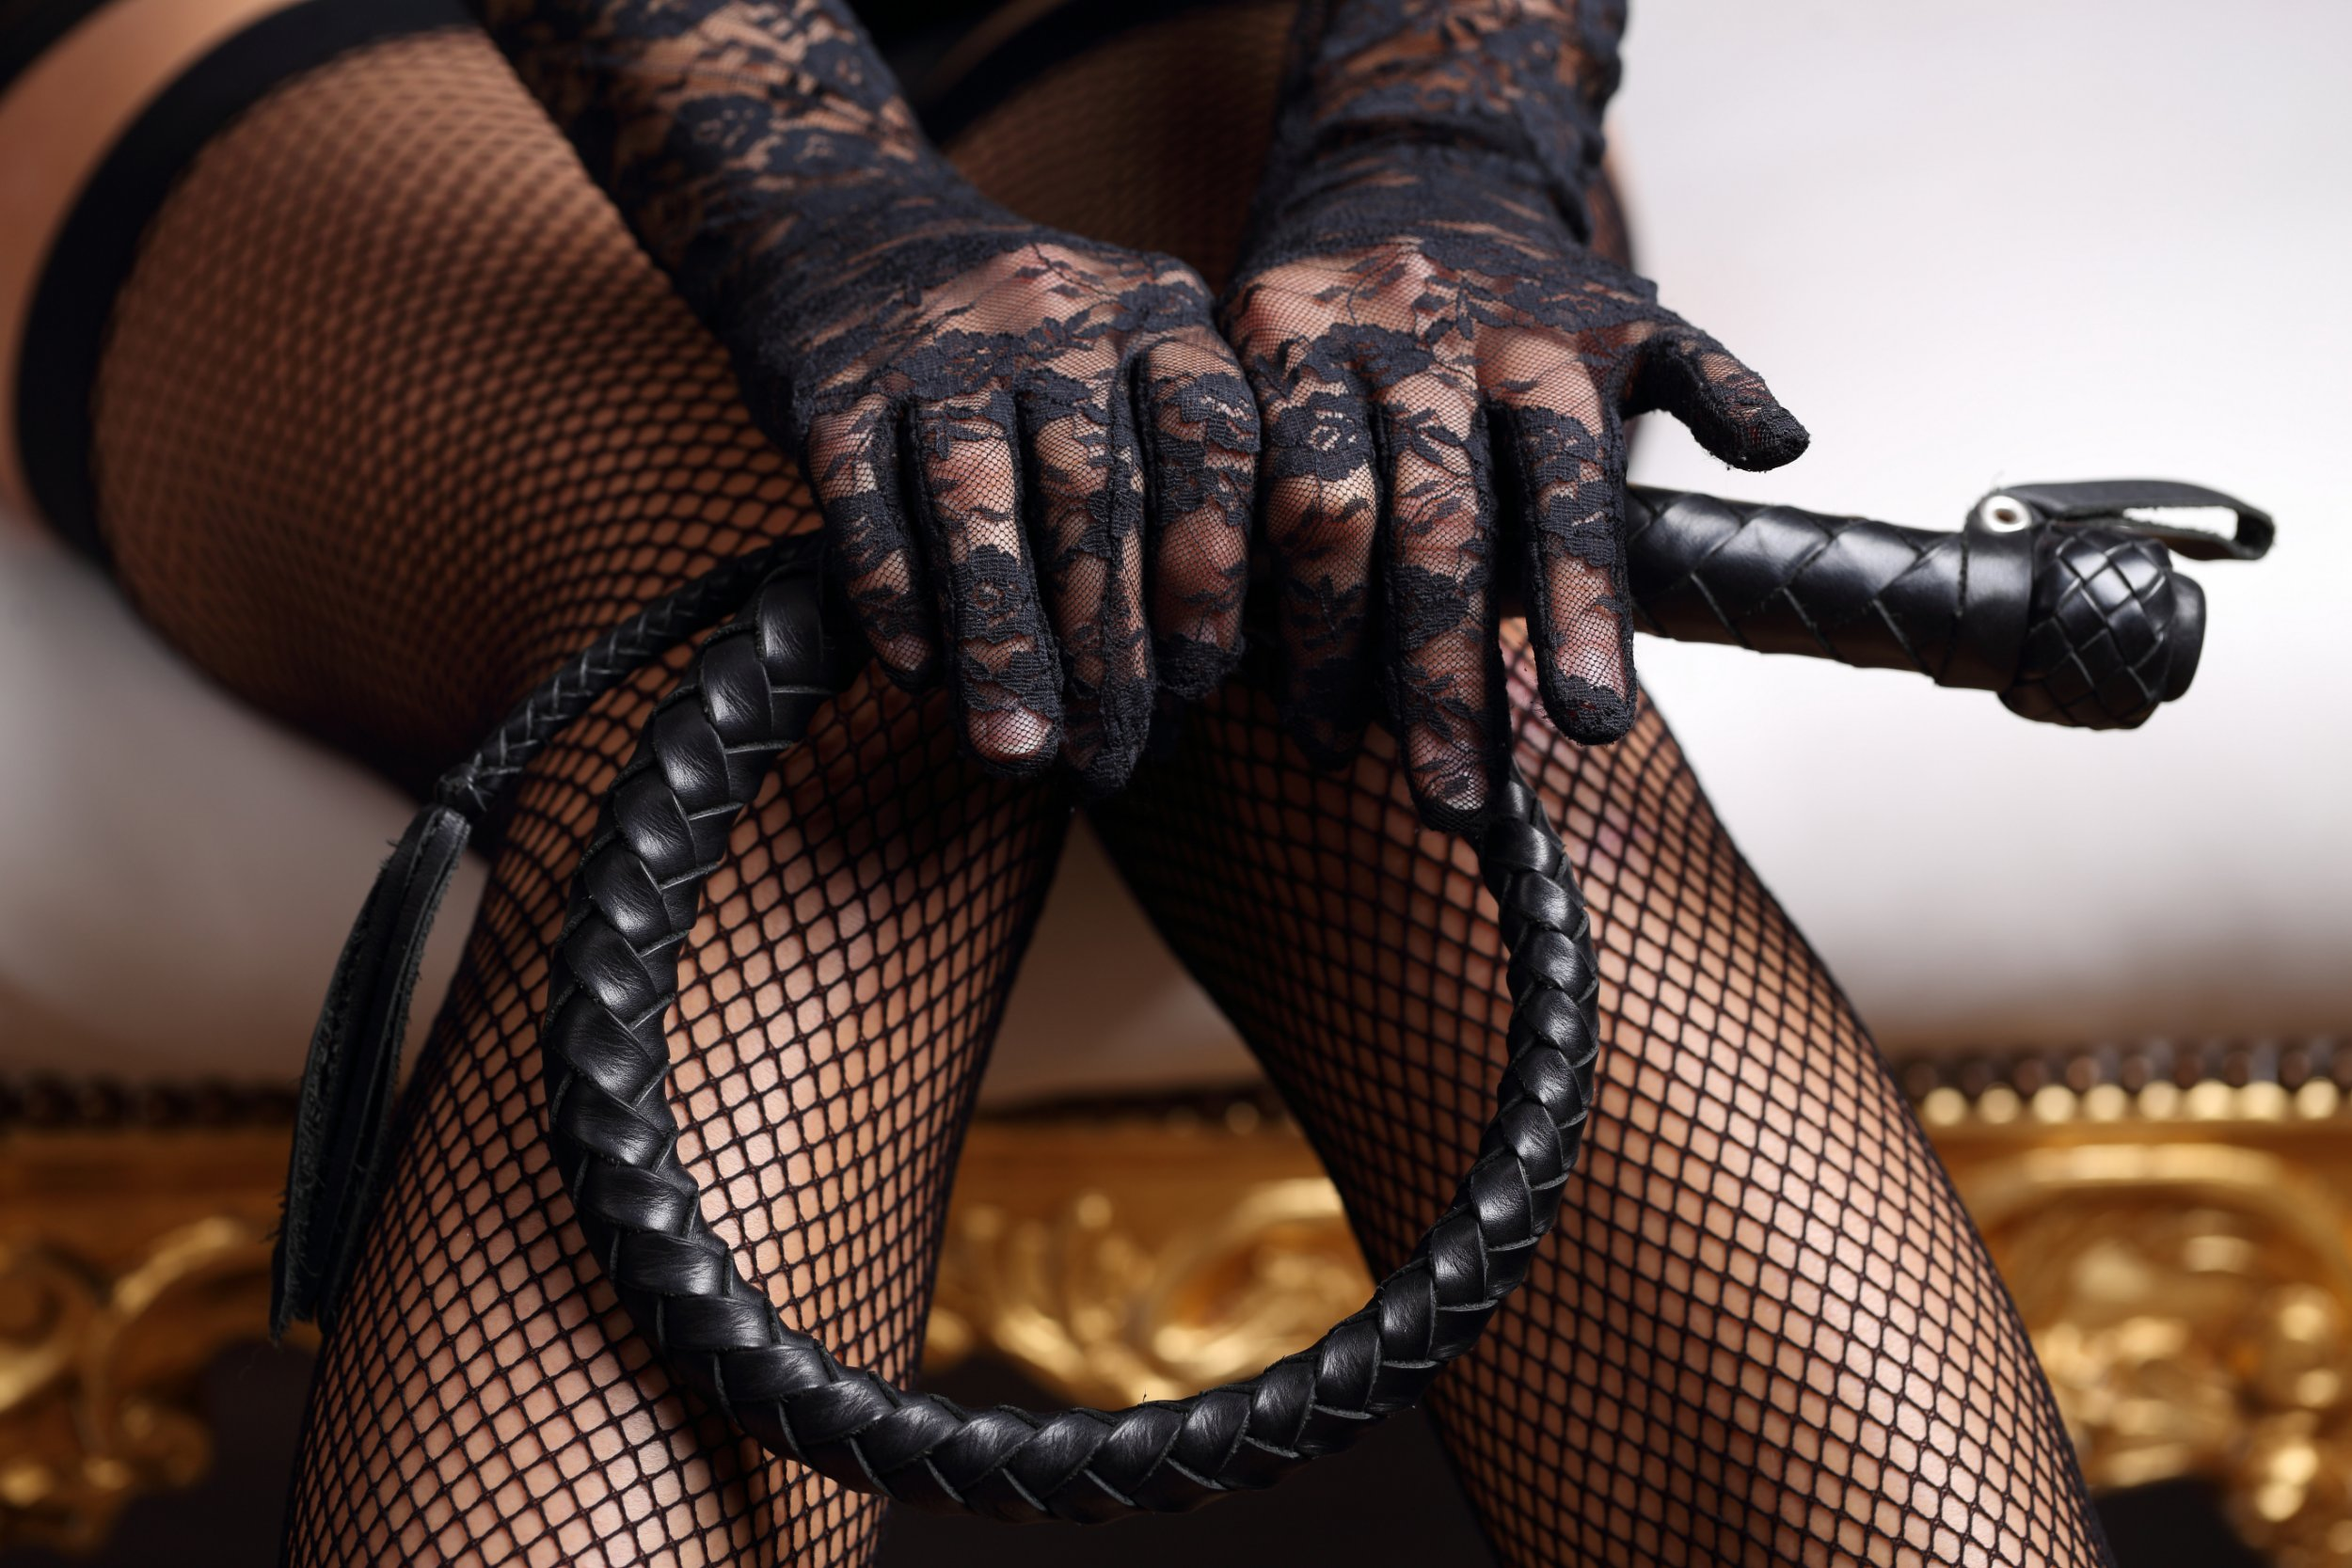 Sensual woman in black lingerie and leather whip; Shutterstock ID 381393499